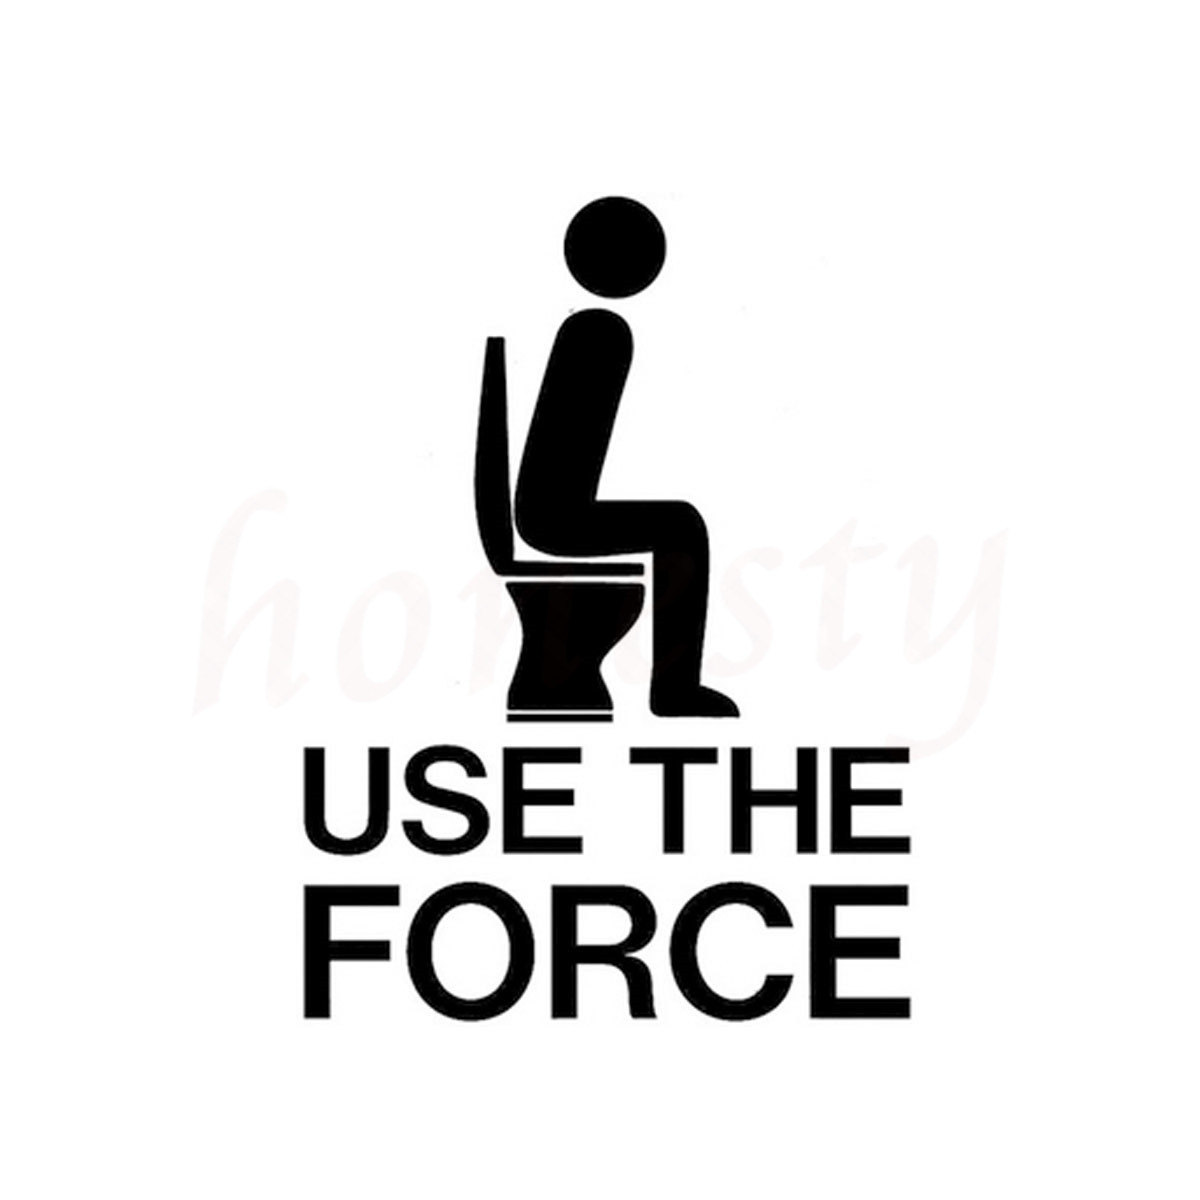 Use The Force Toilet Funny Car Stickers Wall Home Glass Window Door Laptop Truck Motorcycle Vinyl Decal Black 11.5cmX15.4cm